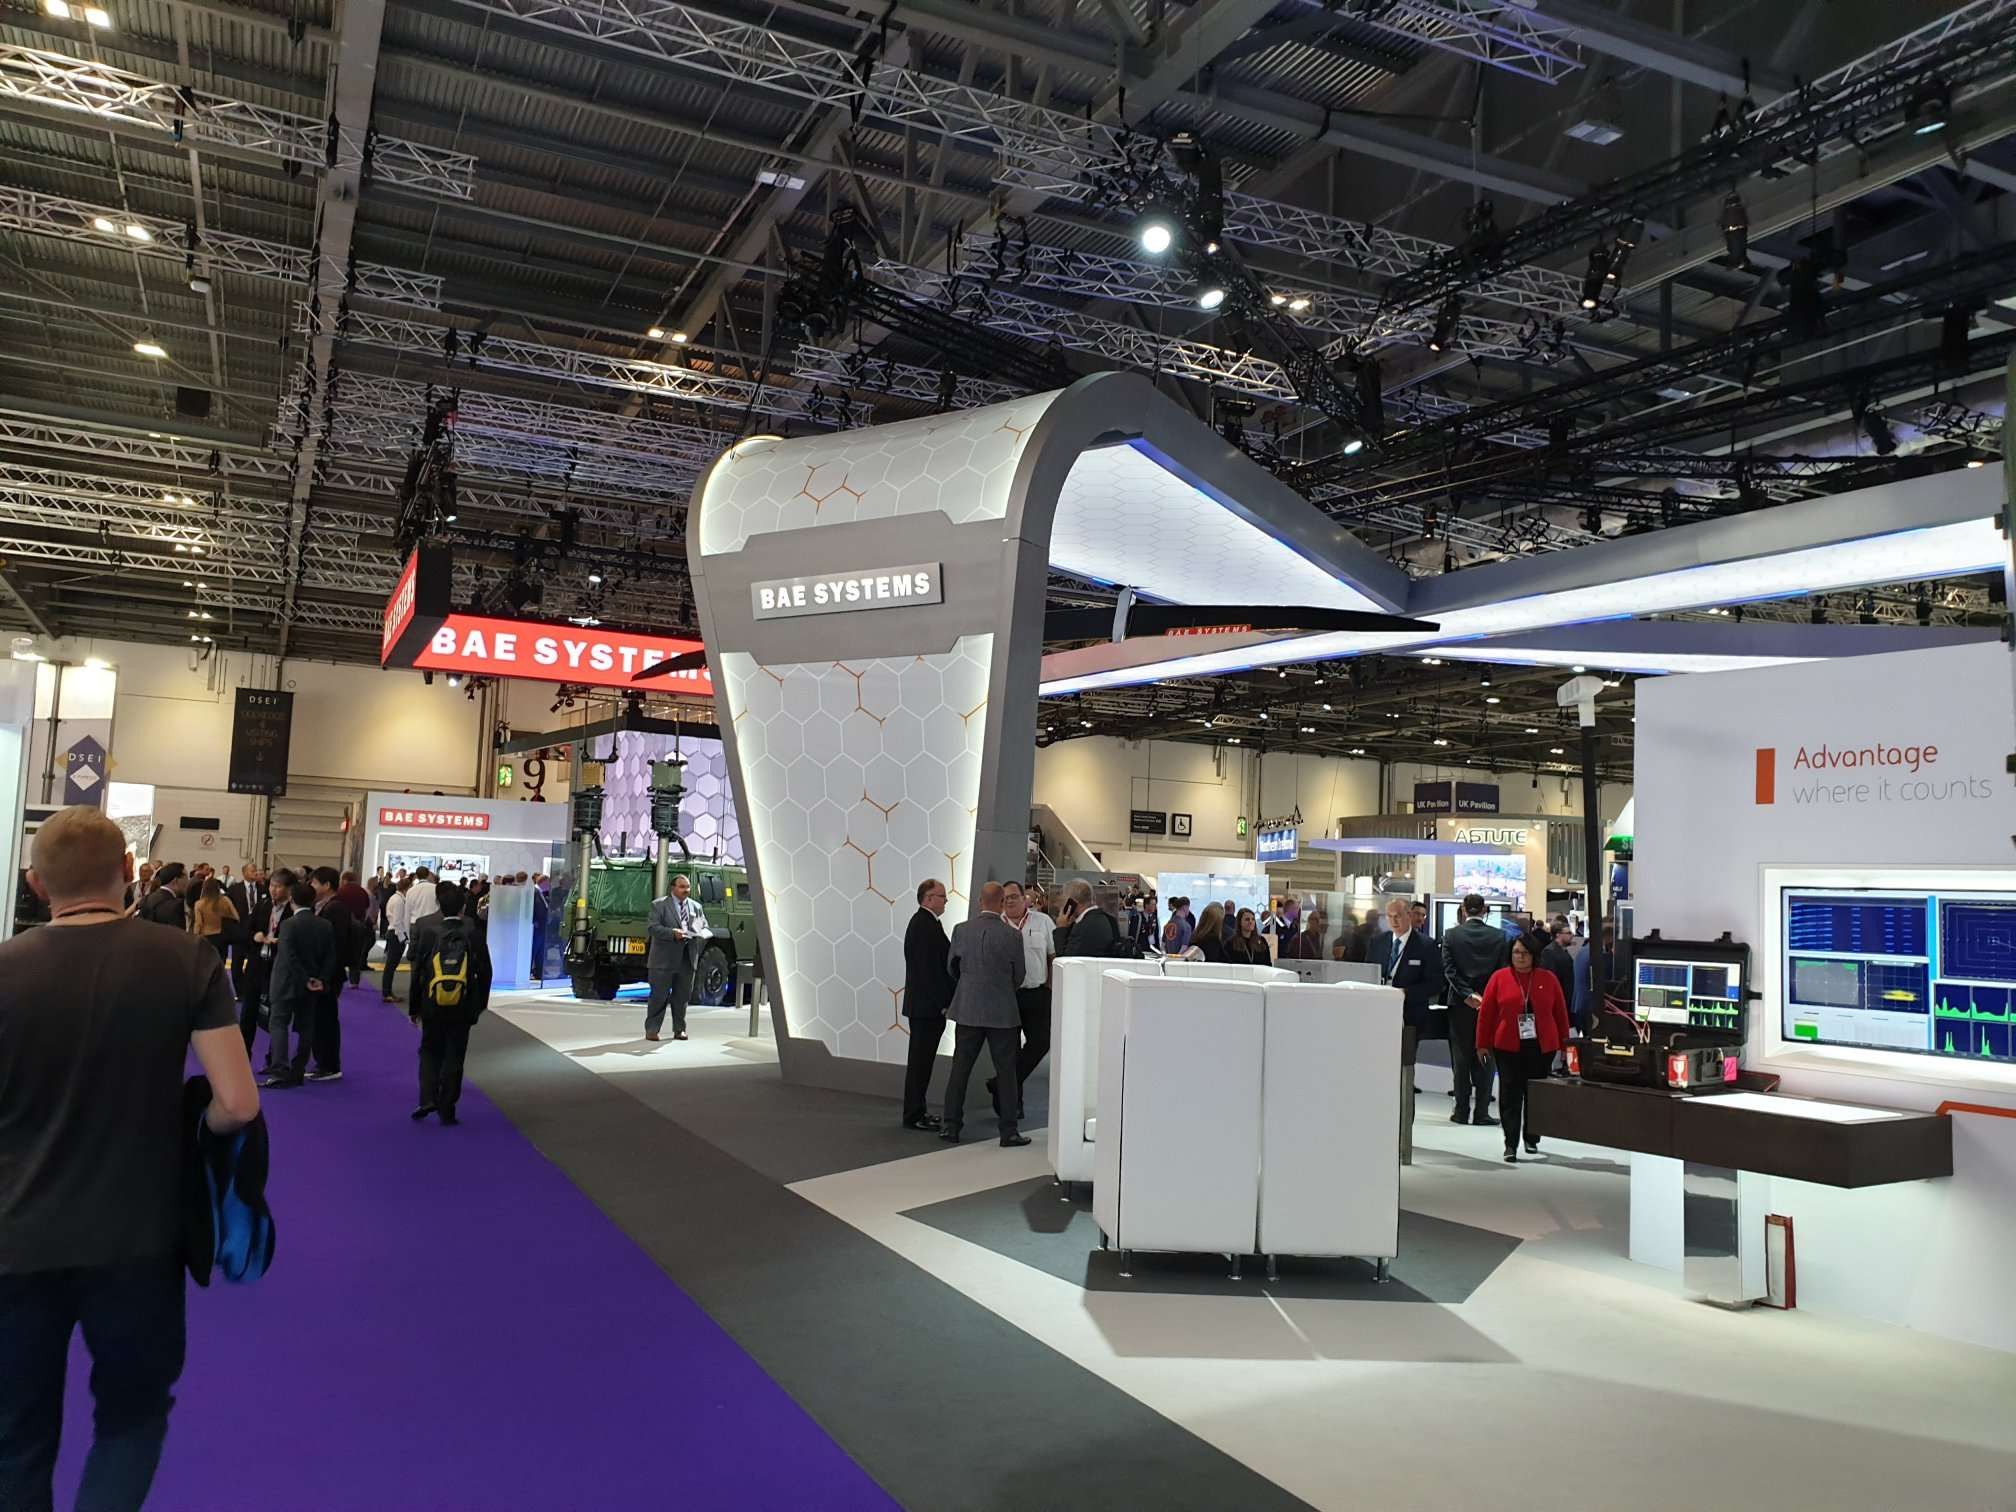 BAE Systems DSEI 2019 London